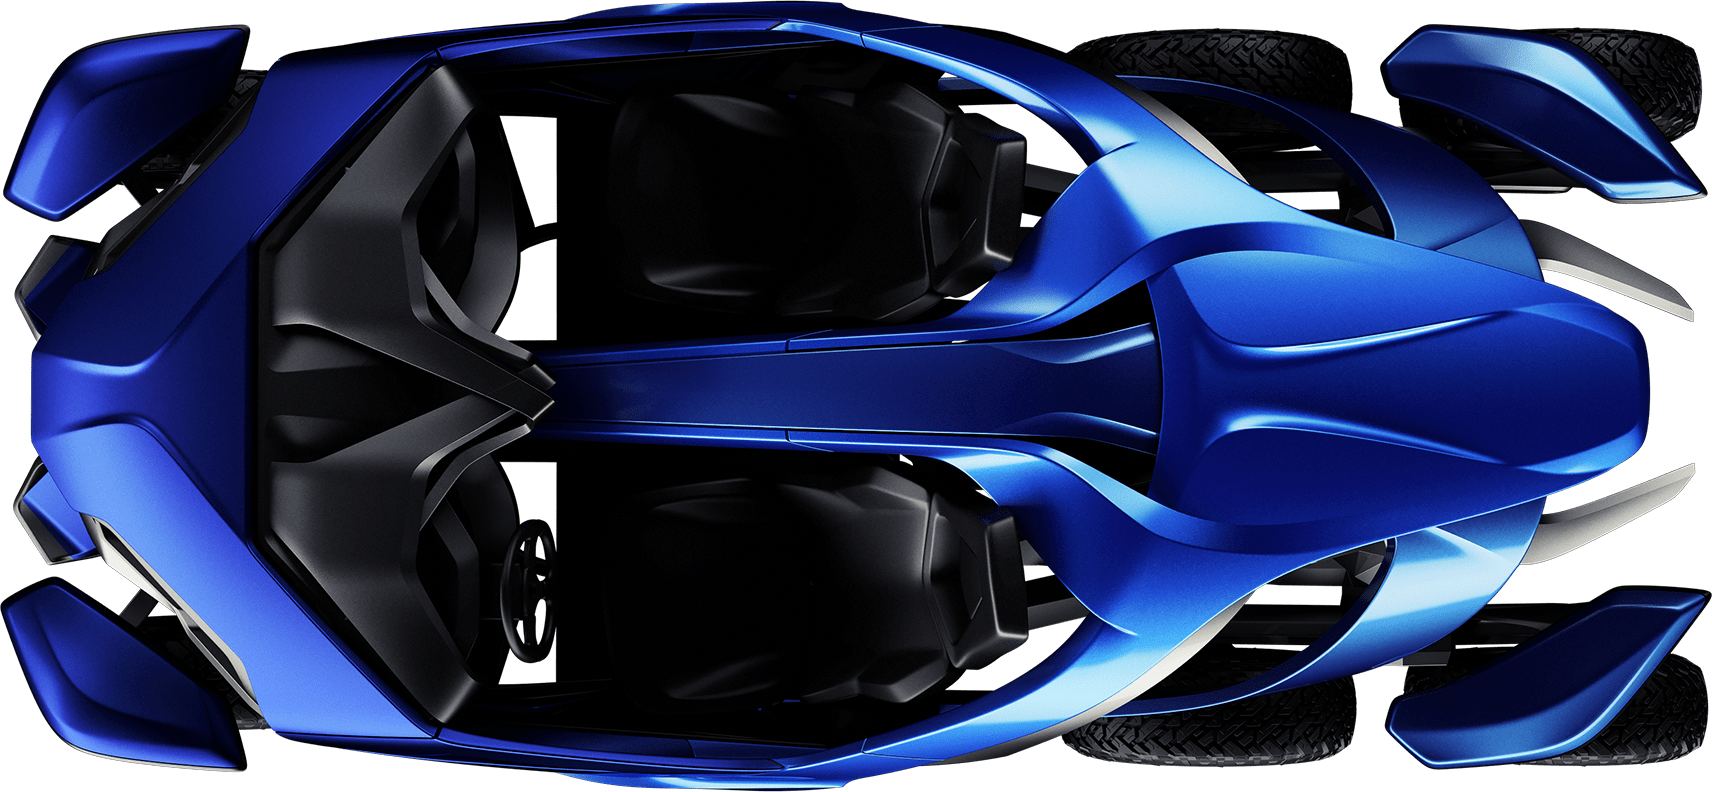 Top down view of the Azaris vehicle